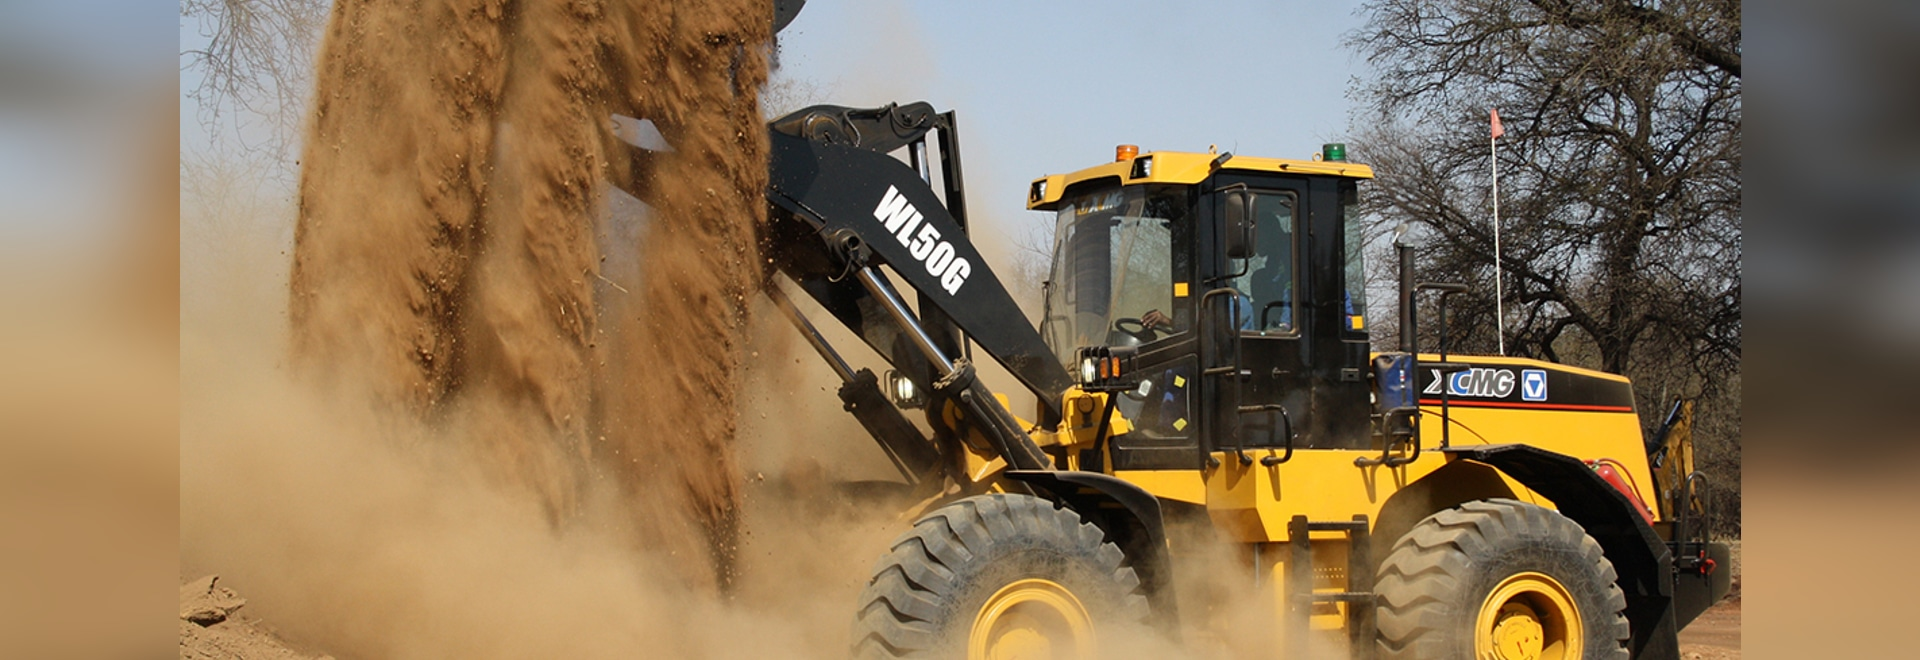 XCMG WL50G South Africa construction